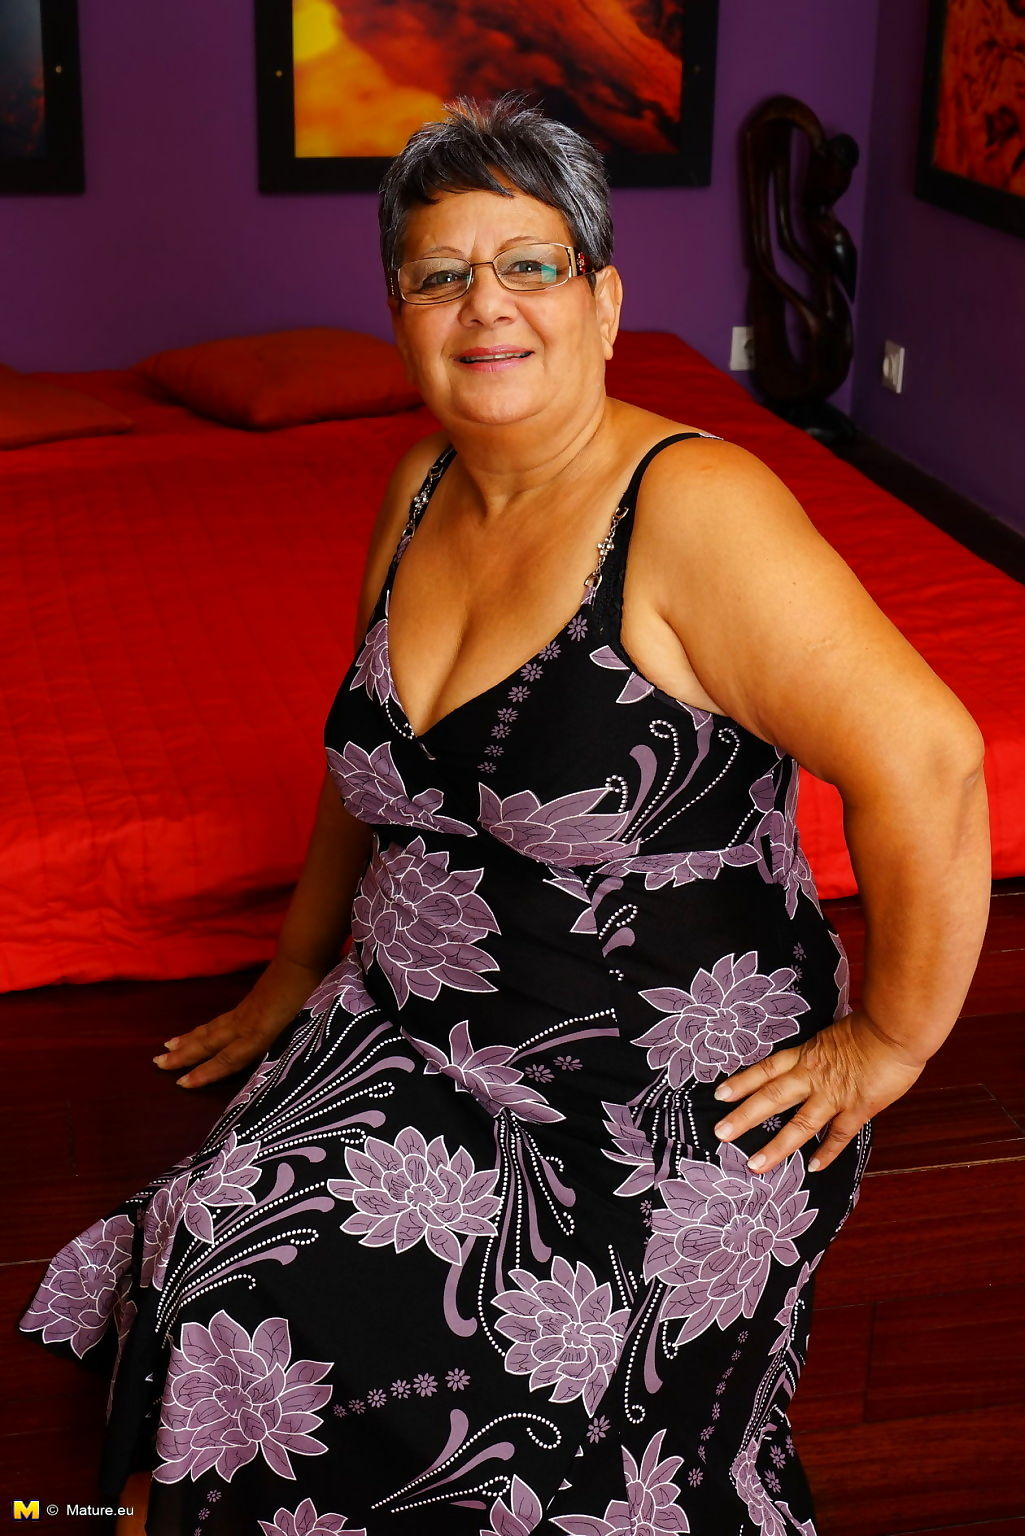 Nauchty chubby mature lady playing with herself - part 3374